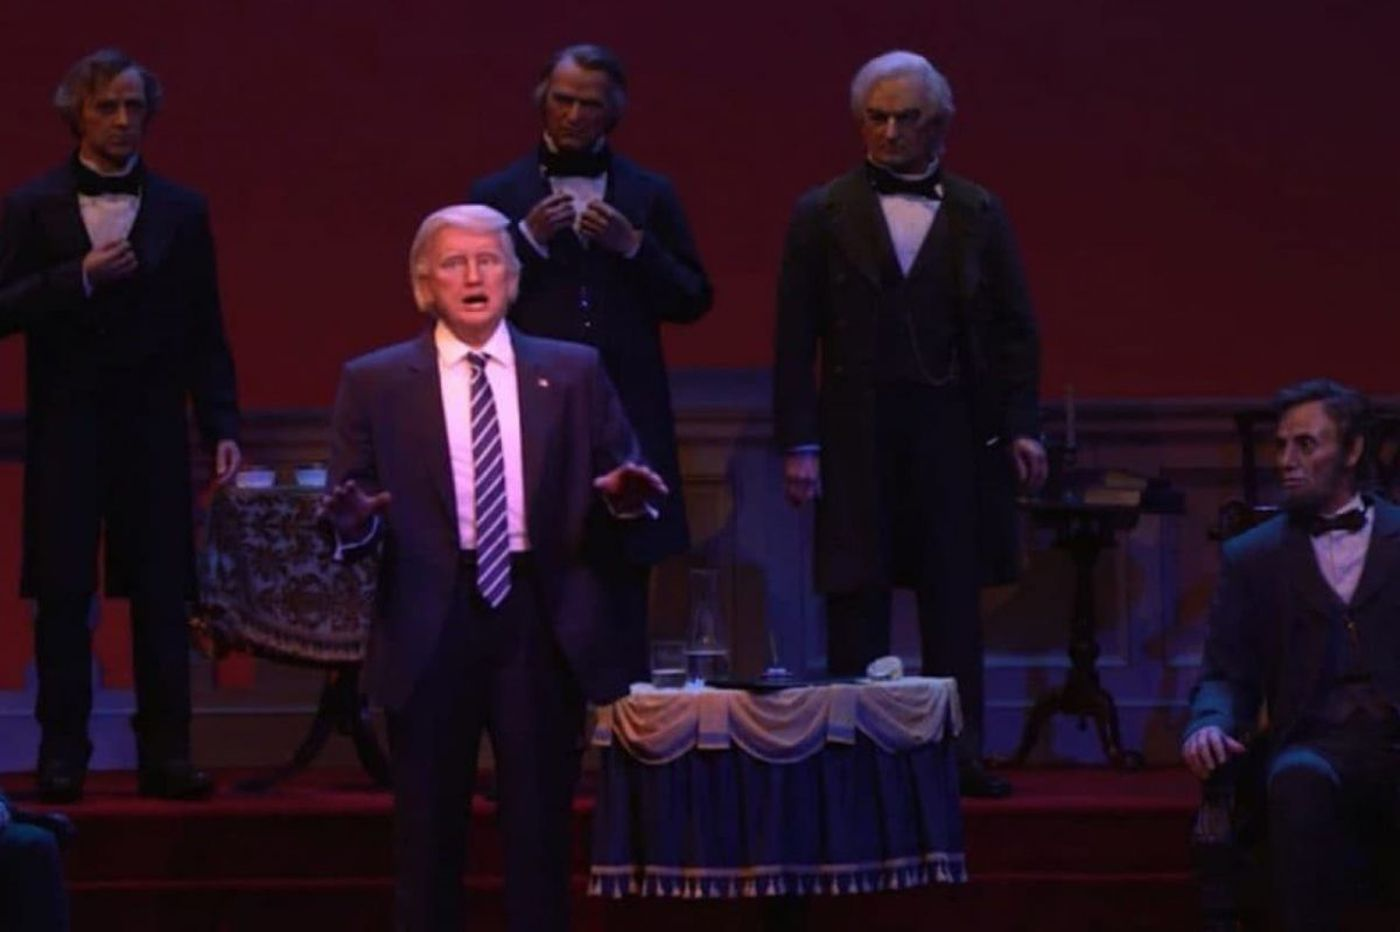 Disney World's President Trump robot has been the object of ridicule